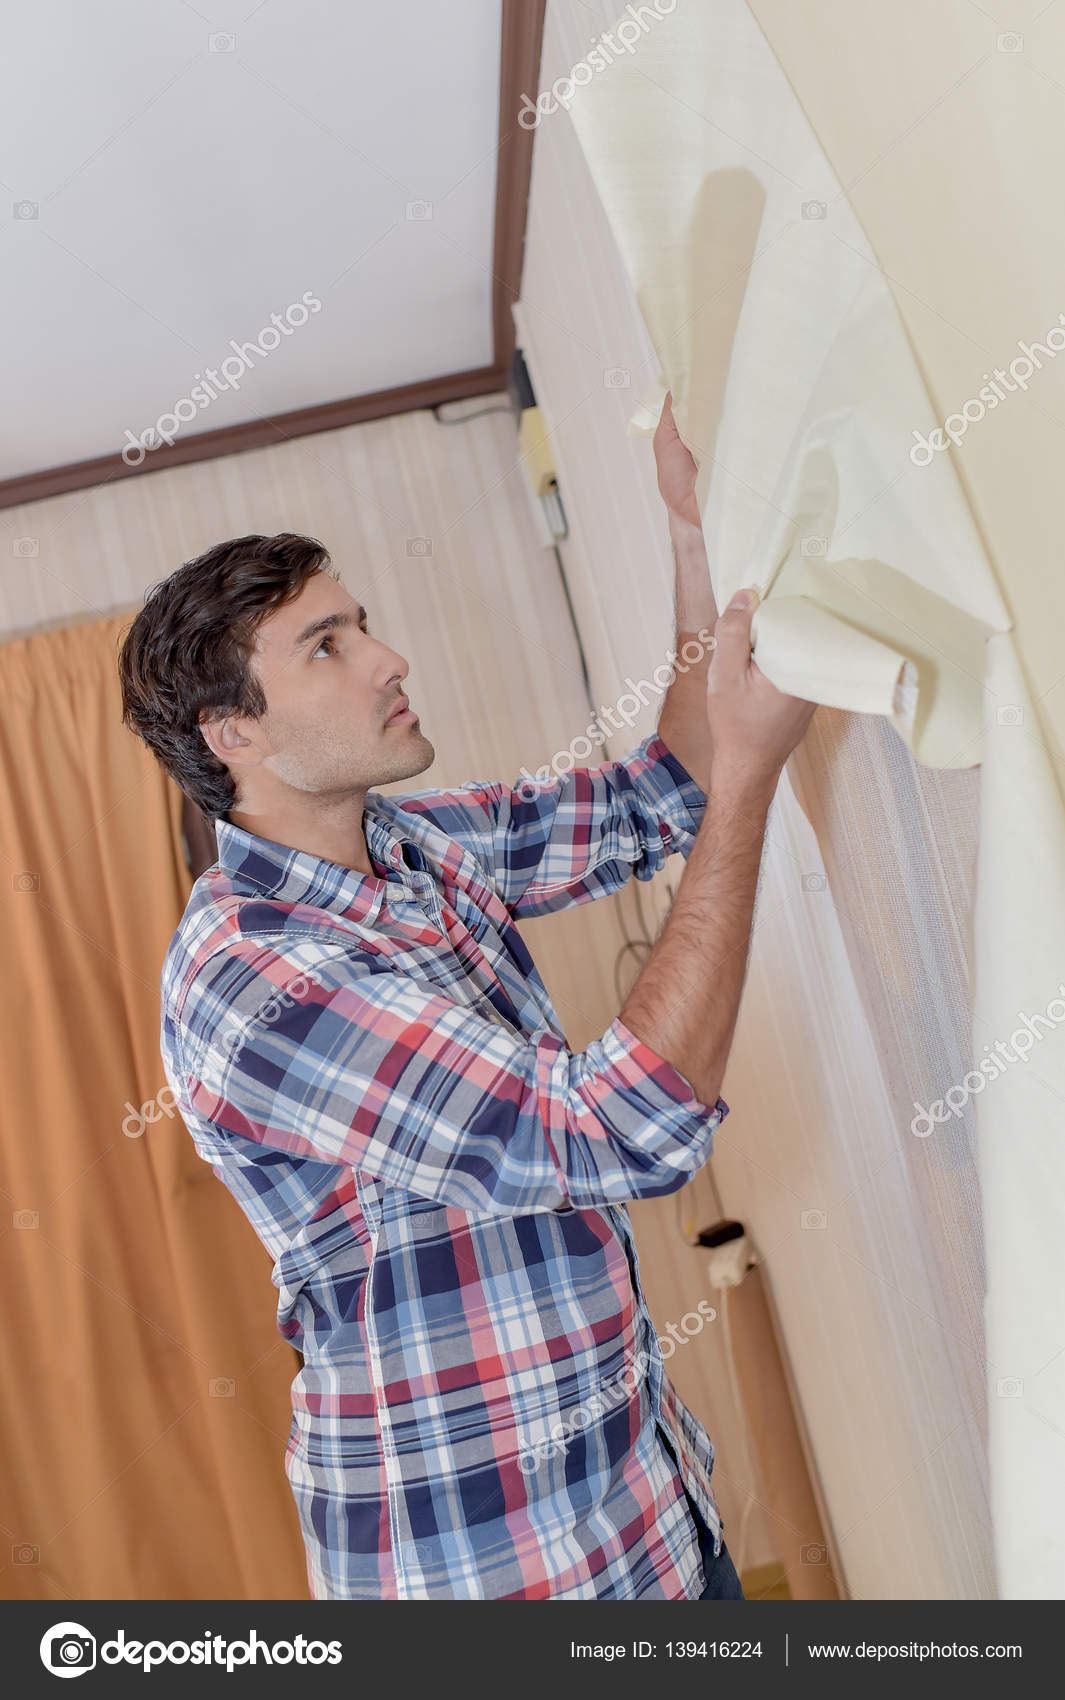 Removing Old Wallpaper And Apartment Stock Photo